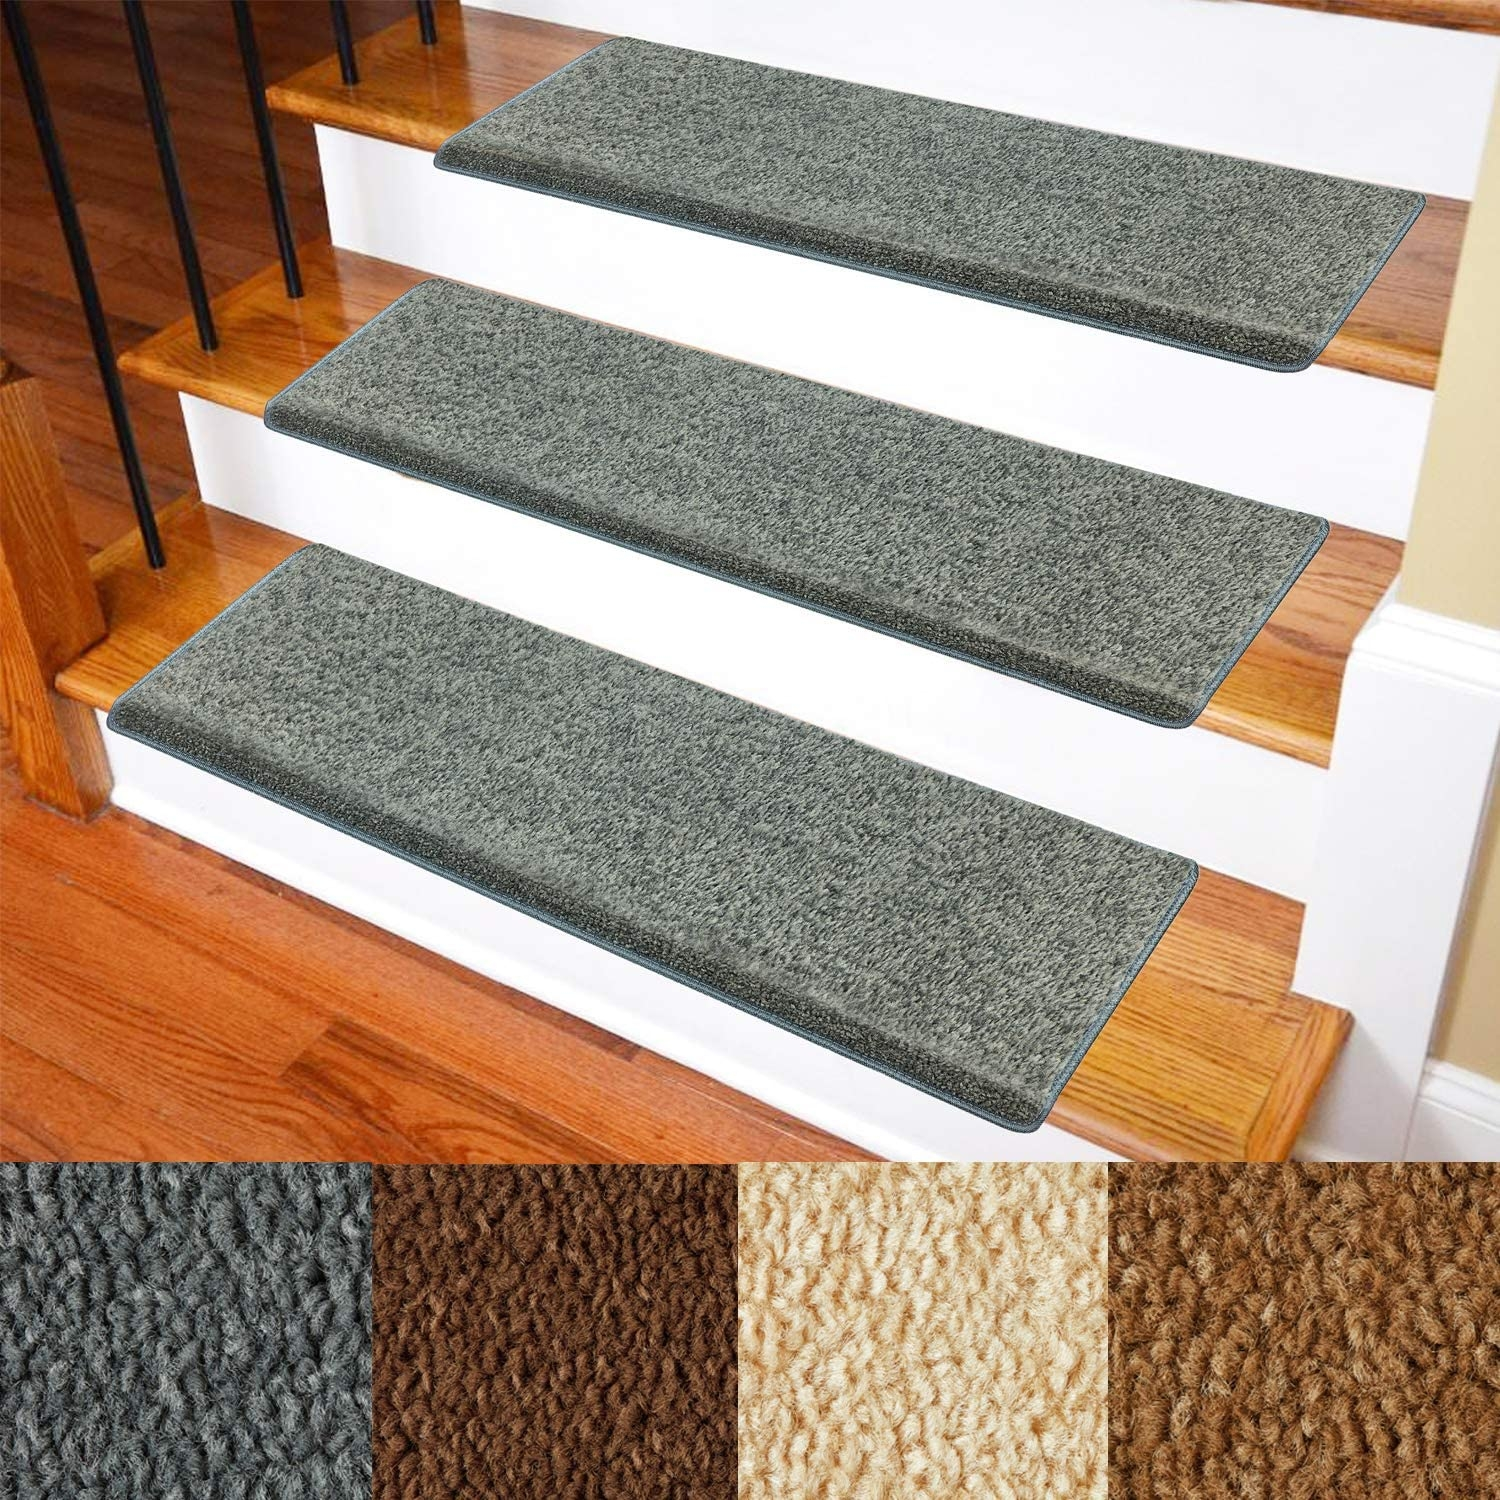 Carpet Stair Treads – Non Slip Bullnose Carpet For Stairs – Indoor | Stairs With Carpet In The Middle | Runner Corner | Laminate | Contemporary | Run On Stair | Marble